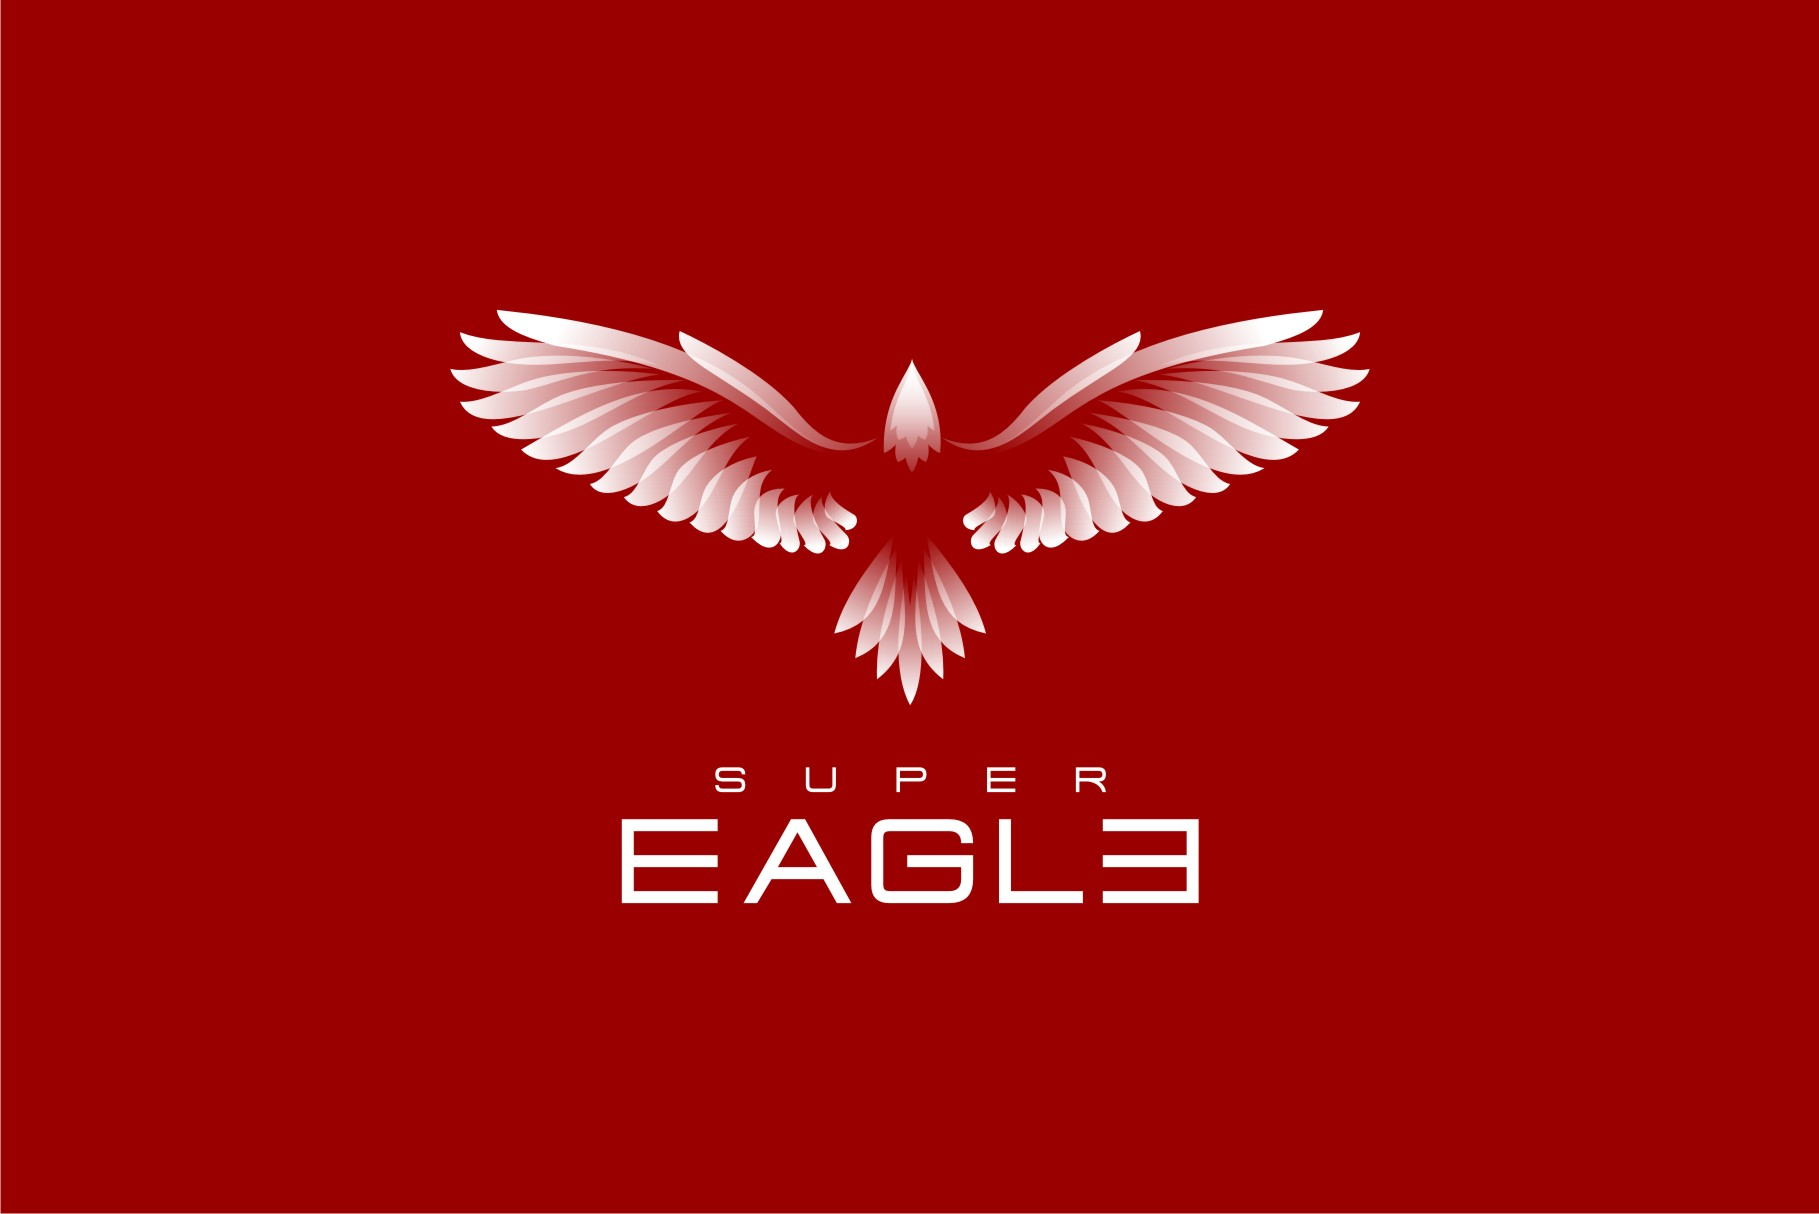 Download Free Super Eagle V 2 Graphic By Herulogo Creative Fabrica for Cricut Explore, Silhouette and other cutting machines.